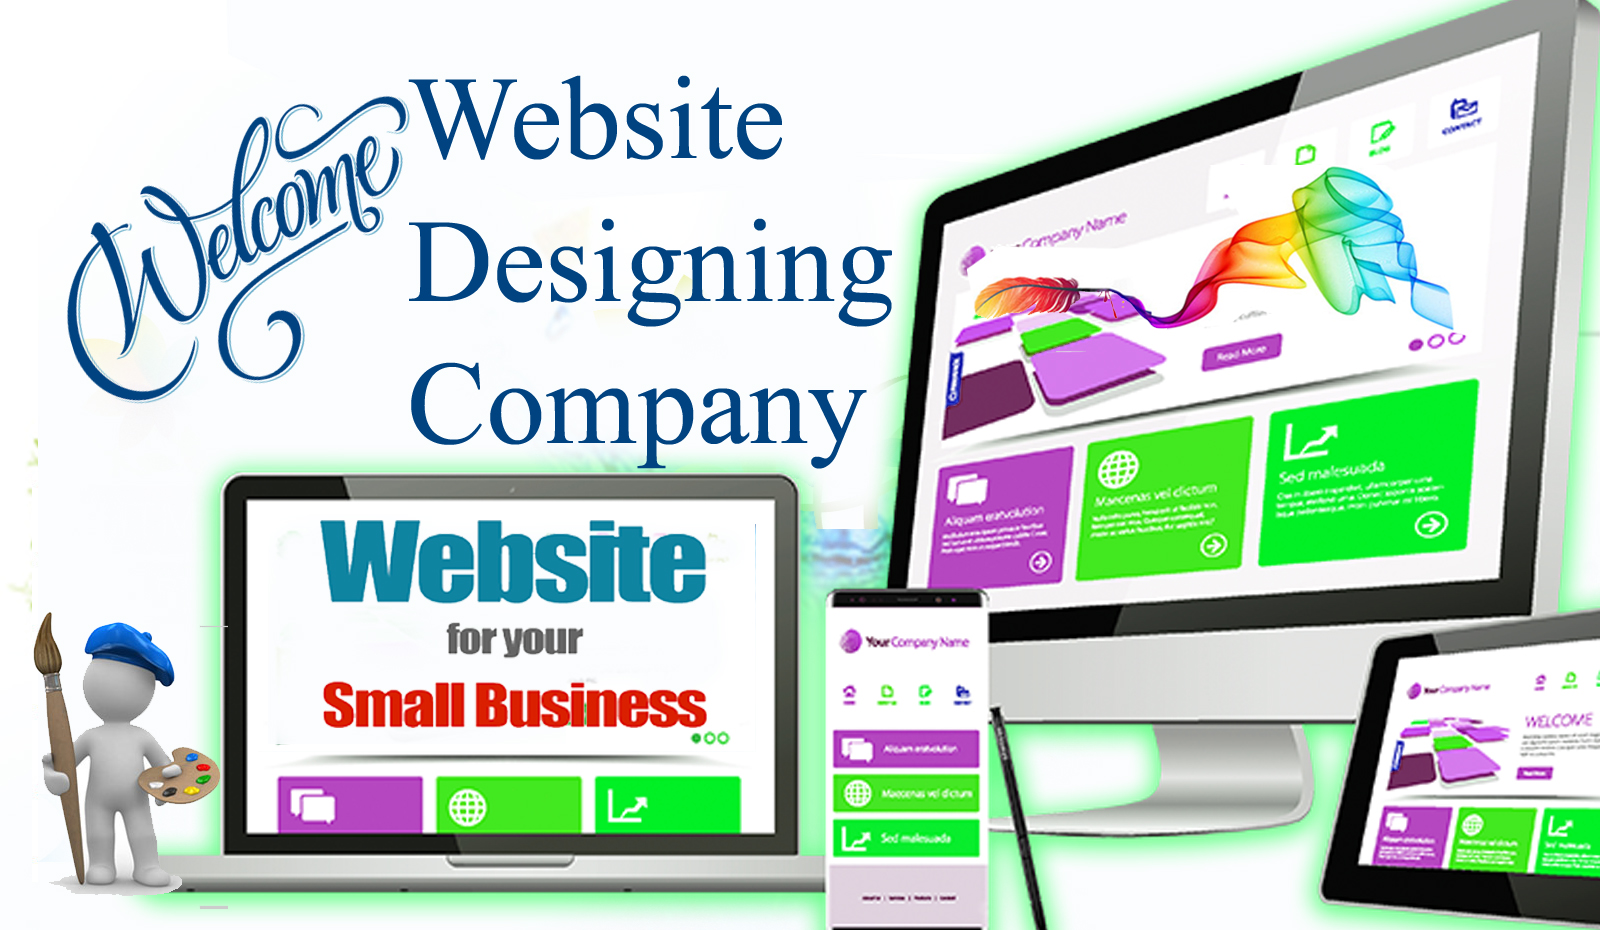 Top 10 Web Design Services Find The Best Website Builder To Create Your Own Site Now Today Web Design Services In India Contact Us 94873 32039